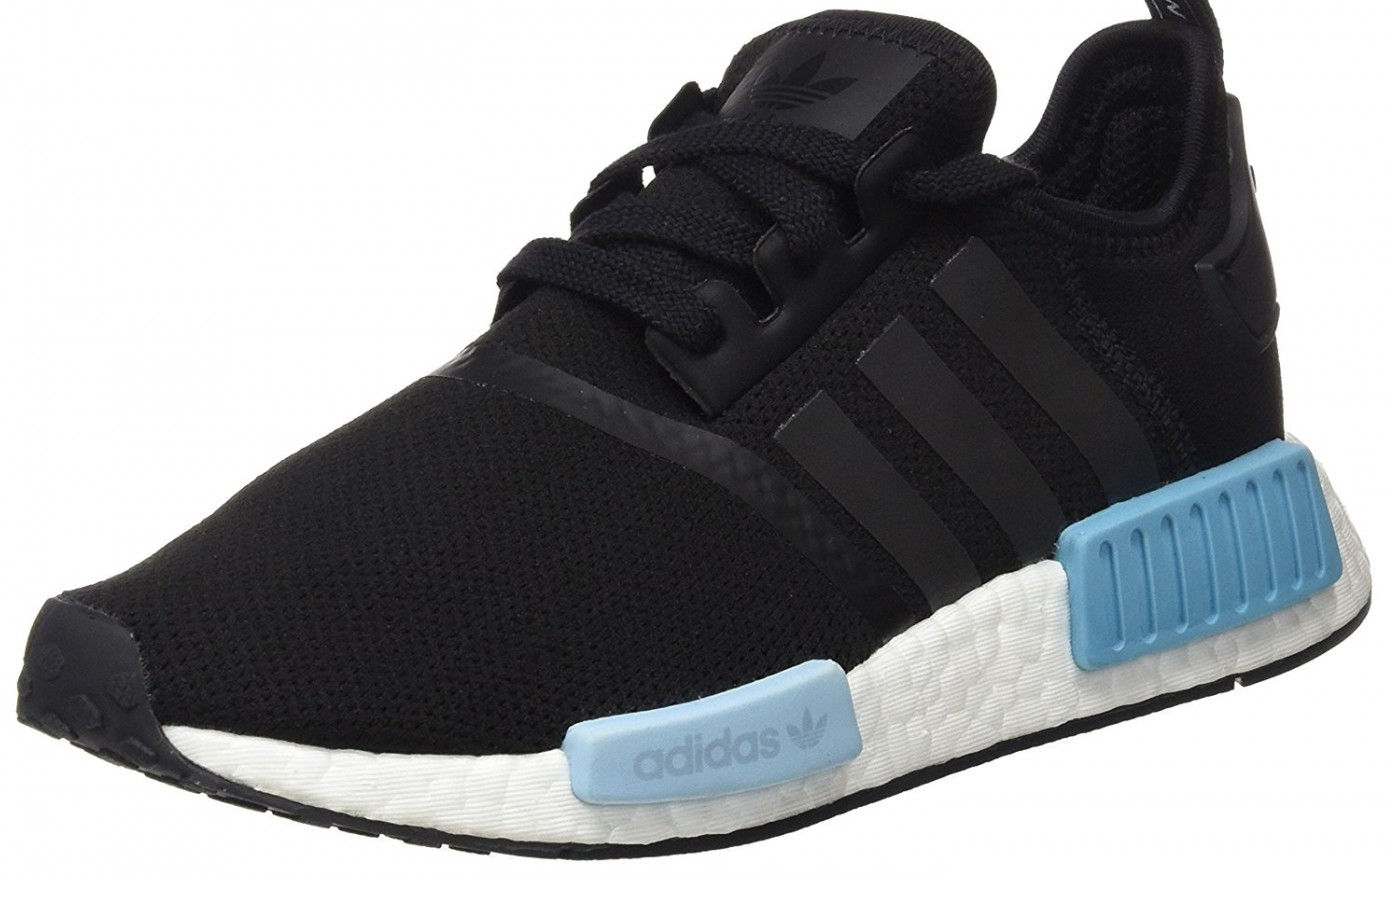 b55122bc0 Adidas NMD R1 Reviewed   Tested for Performance in 2019